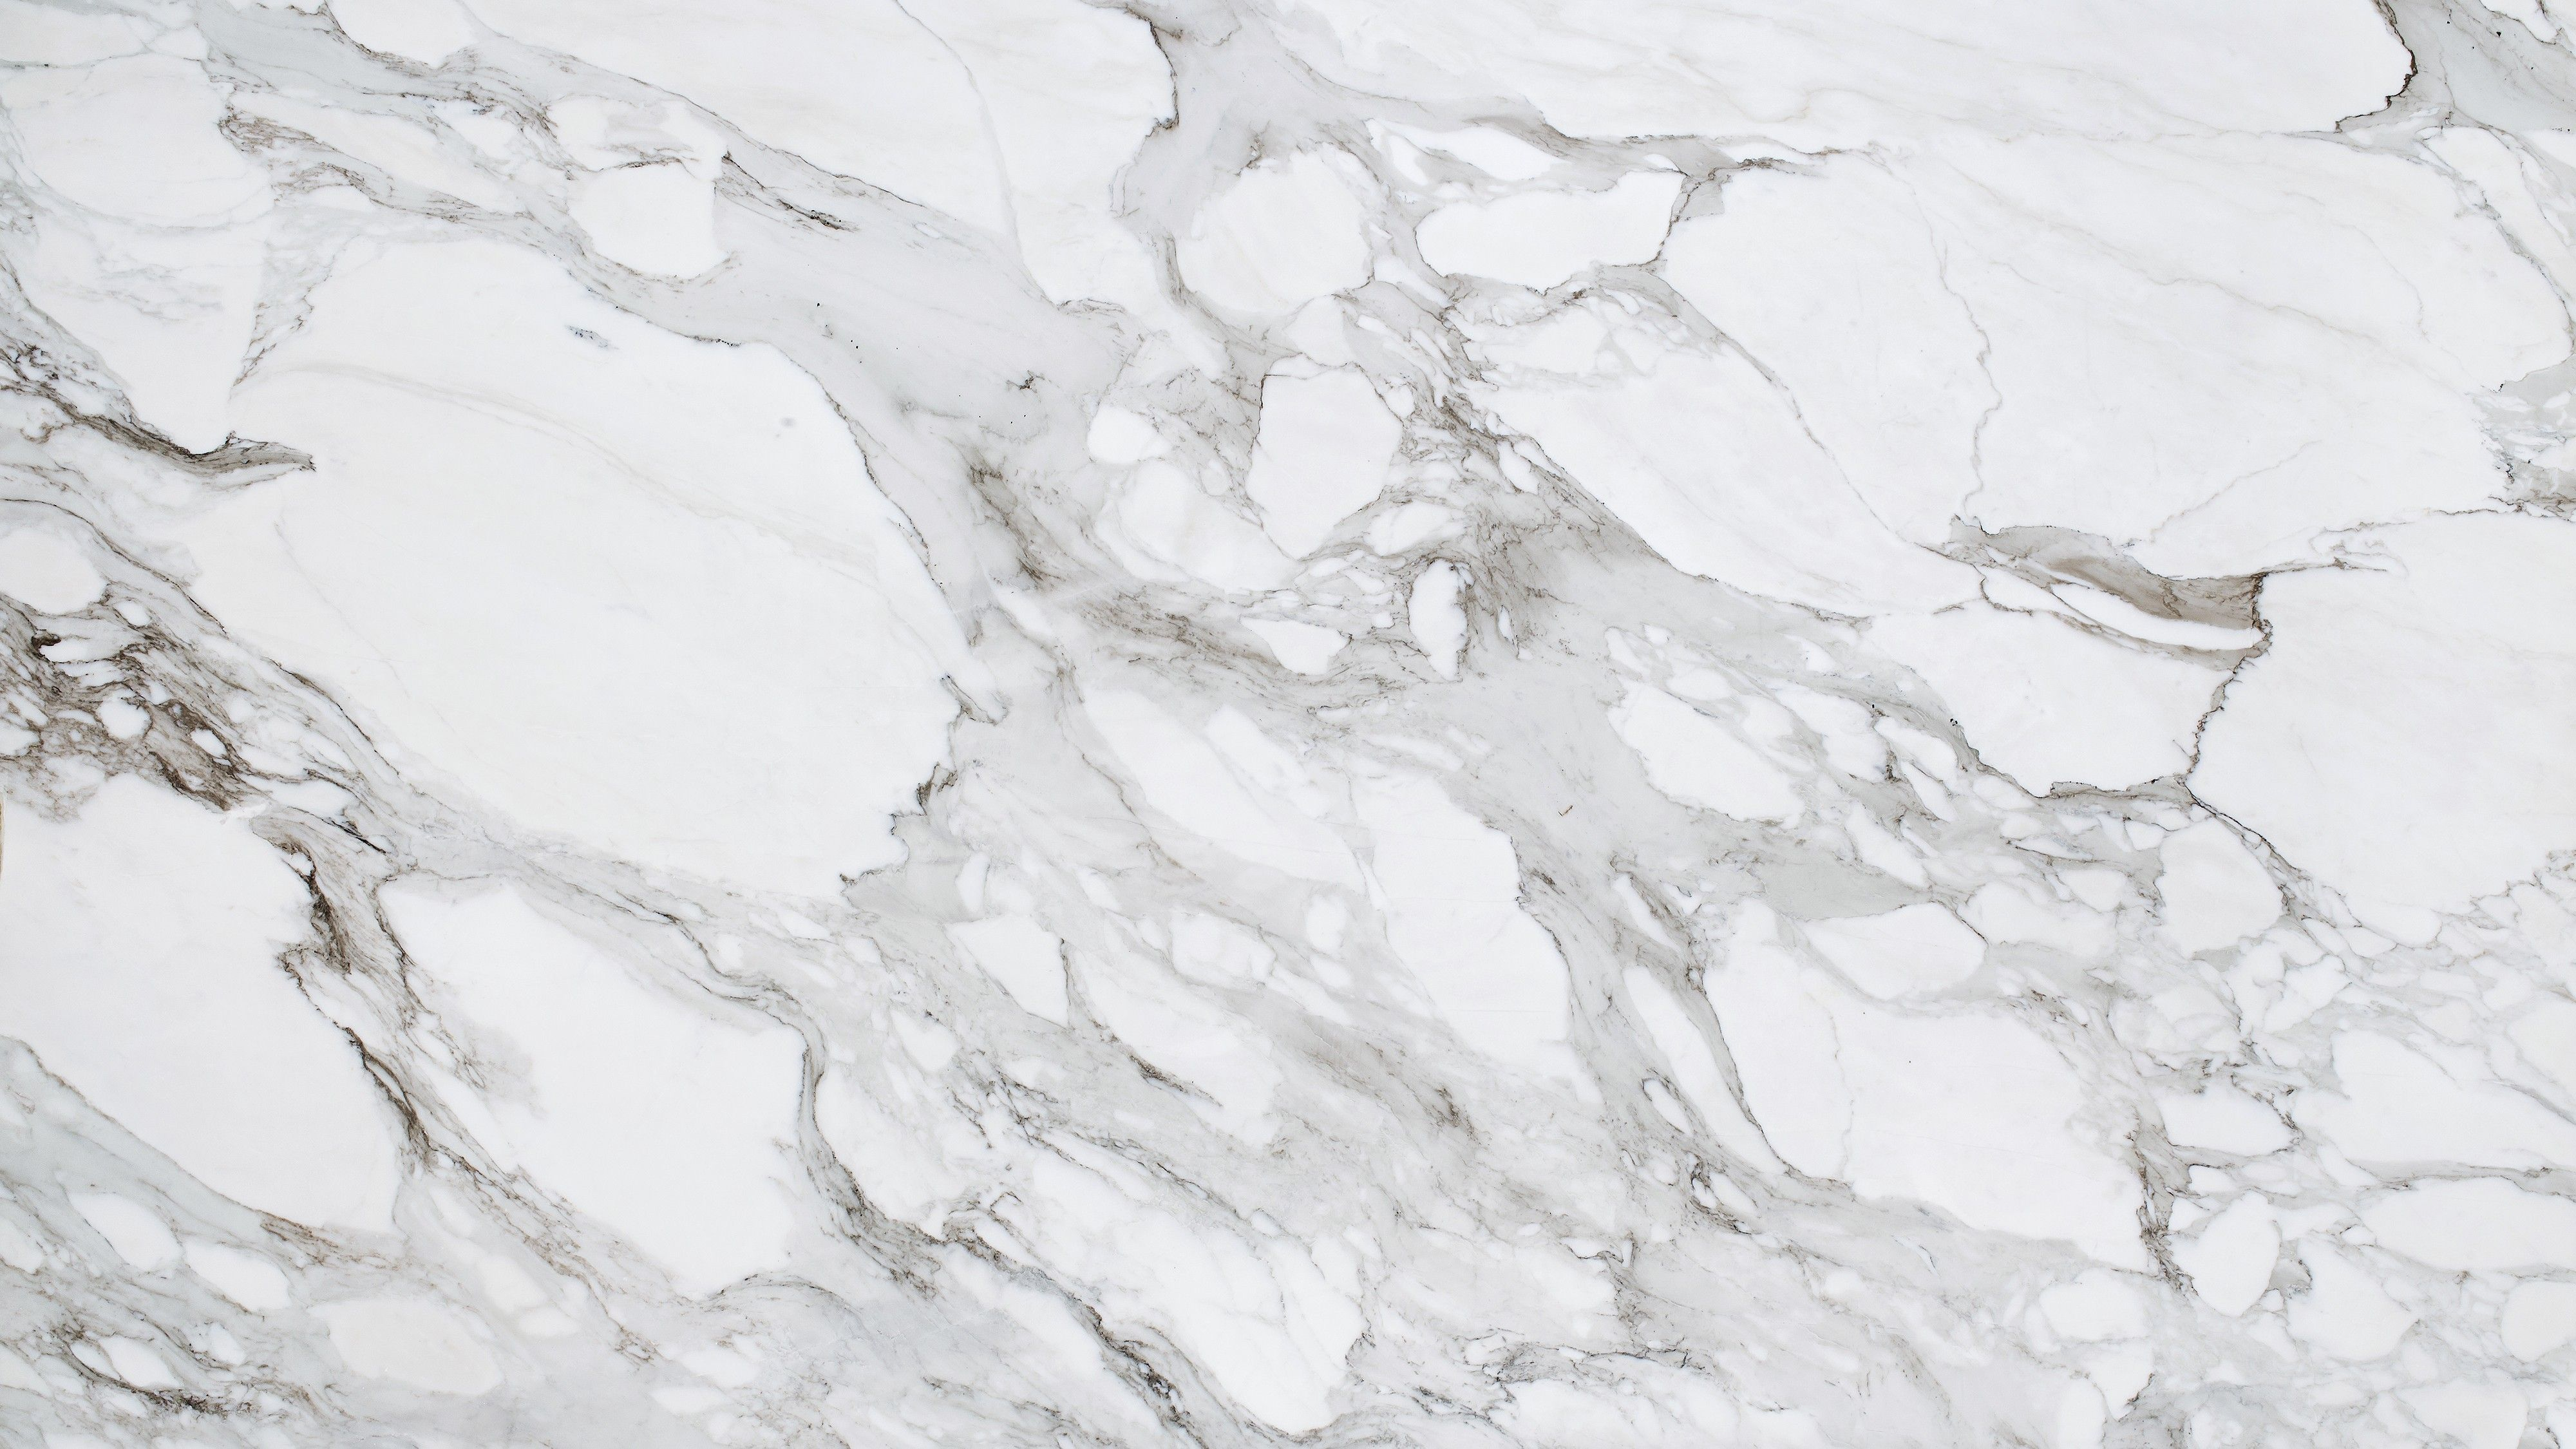 Pin By Jw On Materials Texture Marble Texture Seamless Marble Desktop Wallpaper Marble Wallpaper